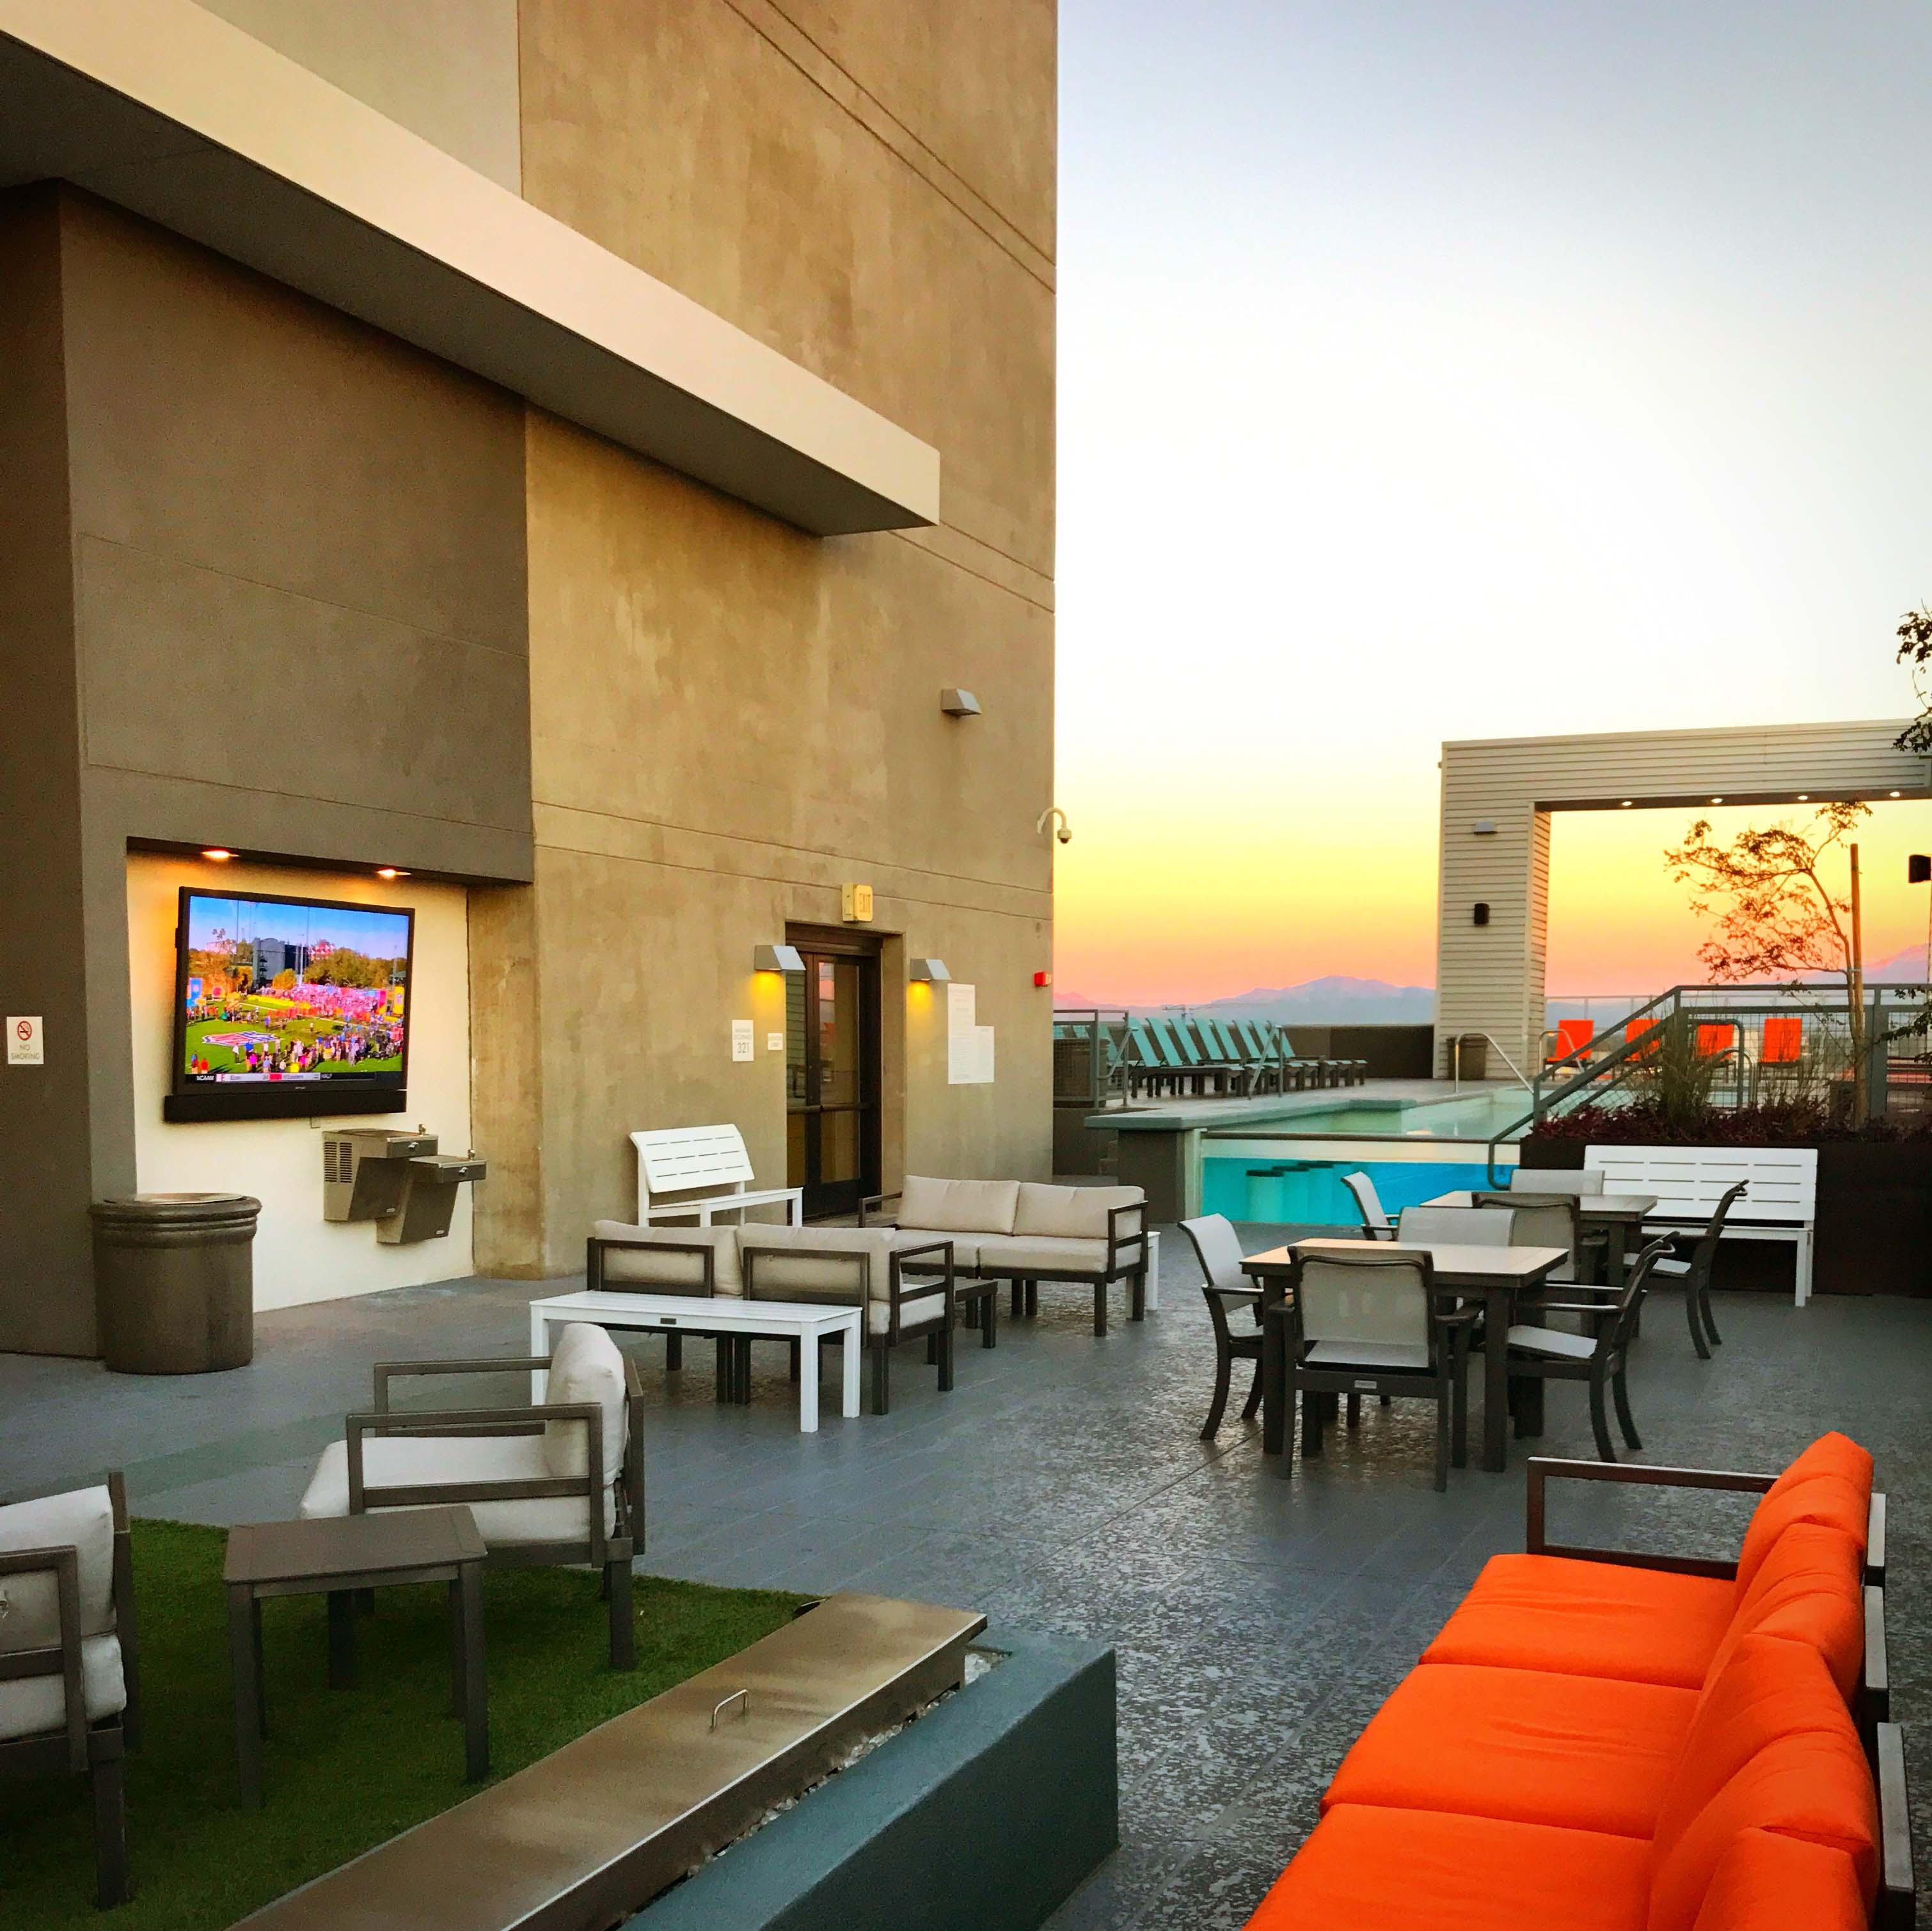 Rooftop Lounge in Tucson, AZ